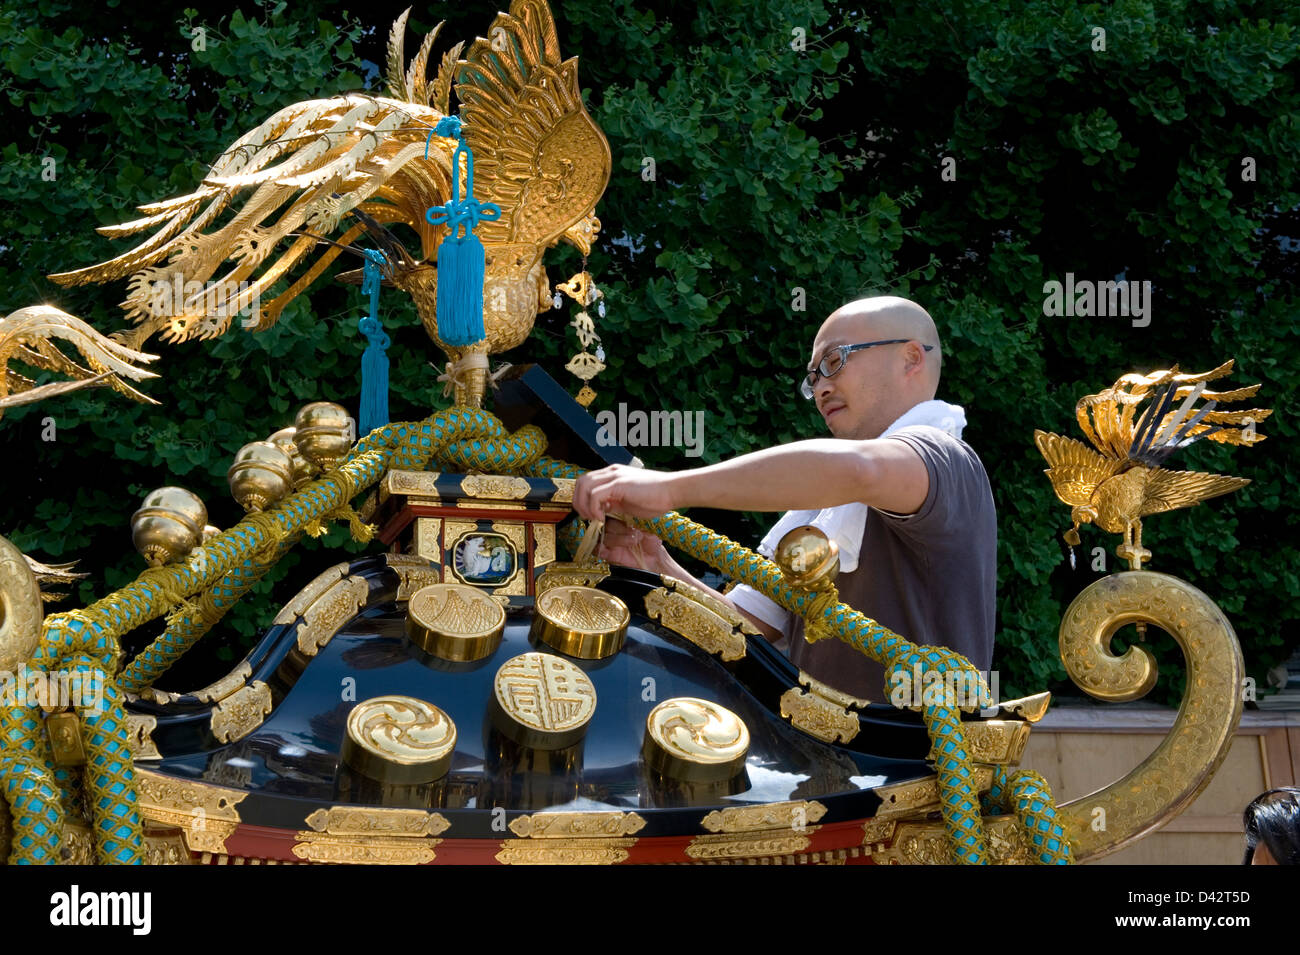 An artisan fastens gold ornaments while decorating a mikoshi portable shrine for the Sanja Matsuri Festival in Asakusa, - Stock Image